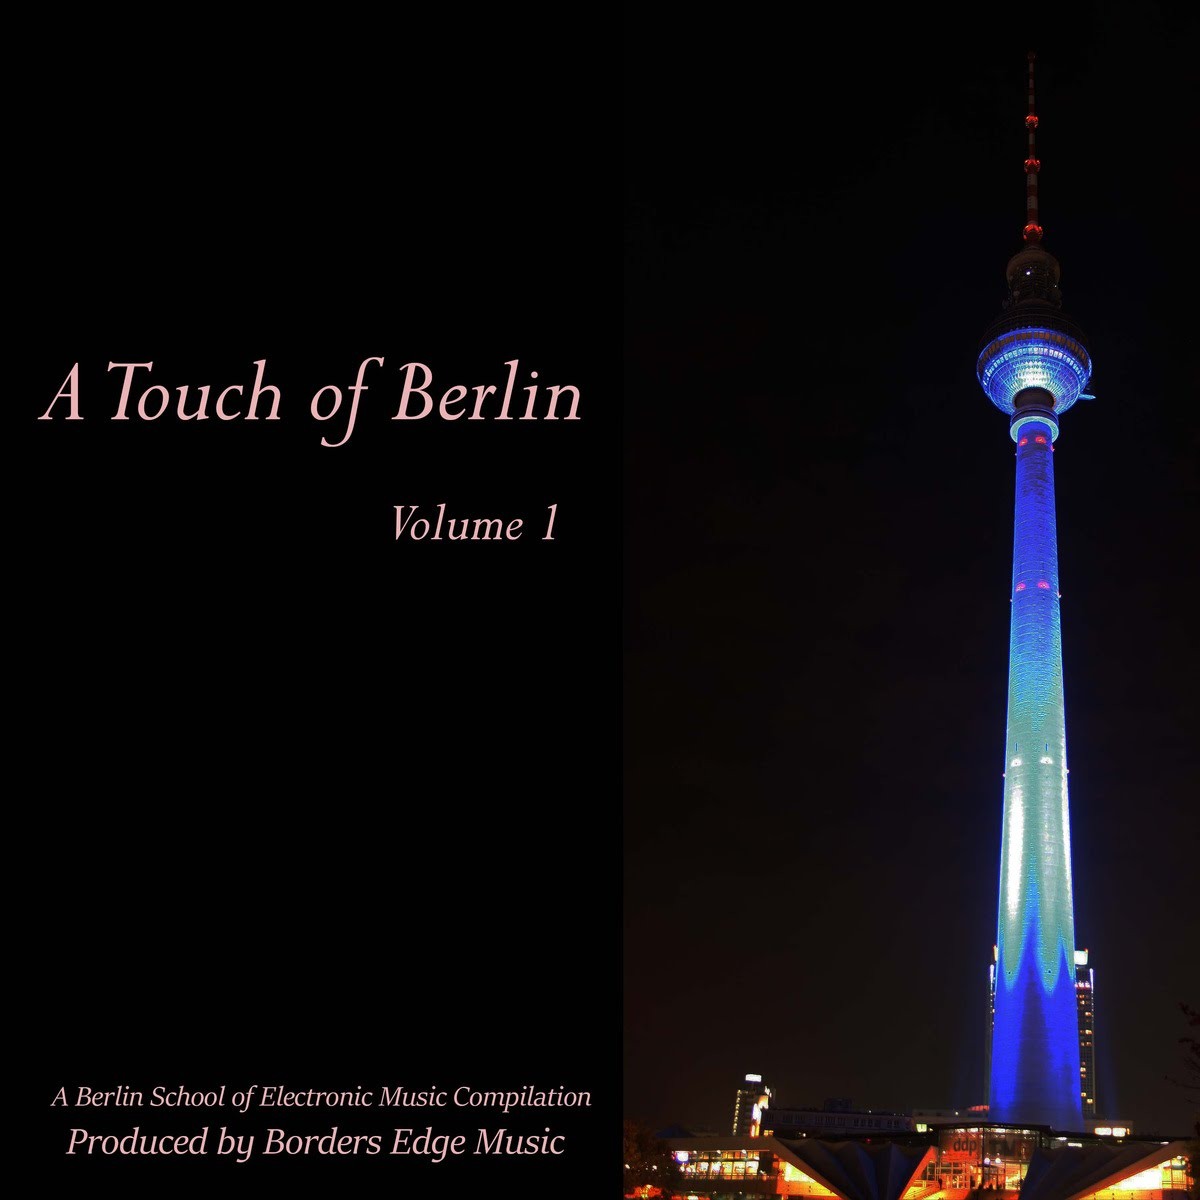 https://bordersedge.bandcamp.com/album/a-touch-of-berlin-vol-1